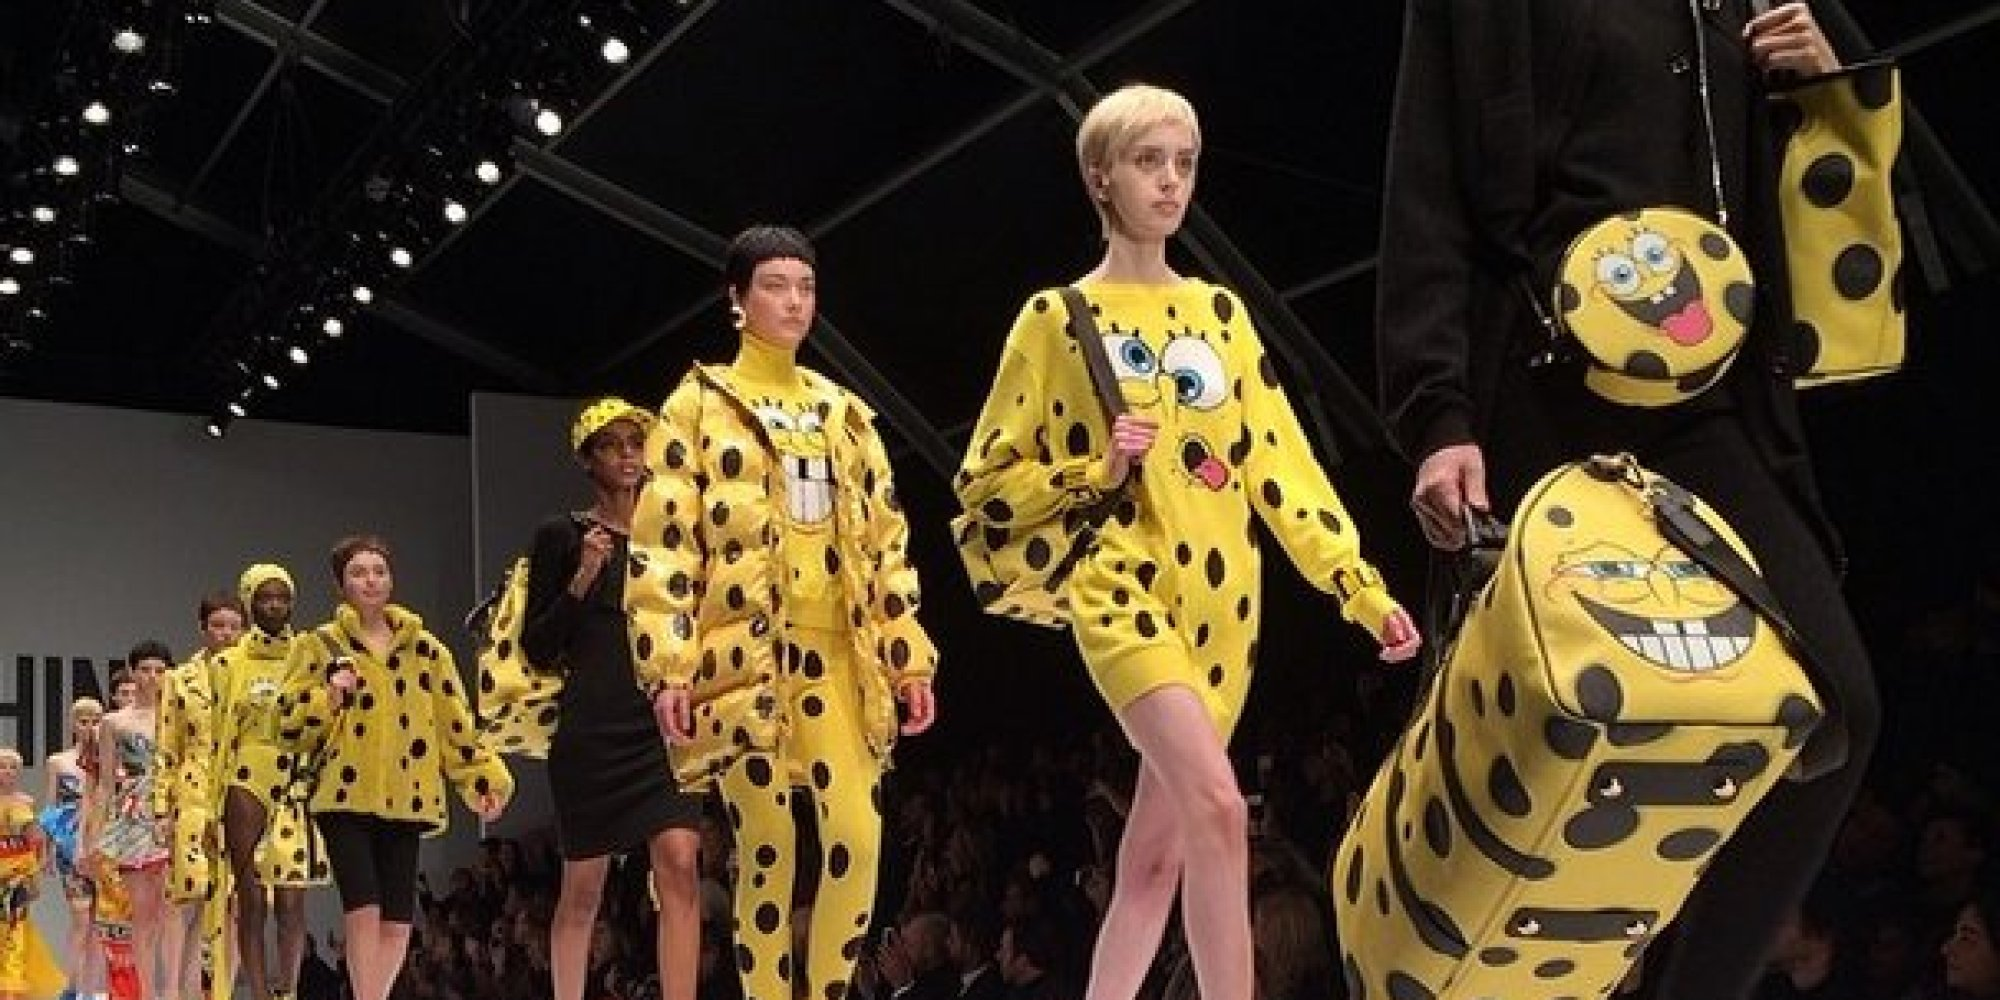 Jeremy Scott: Debut na Moschino Katy Perry Instagram